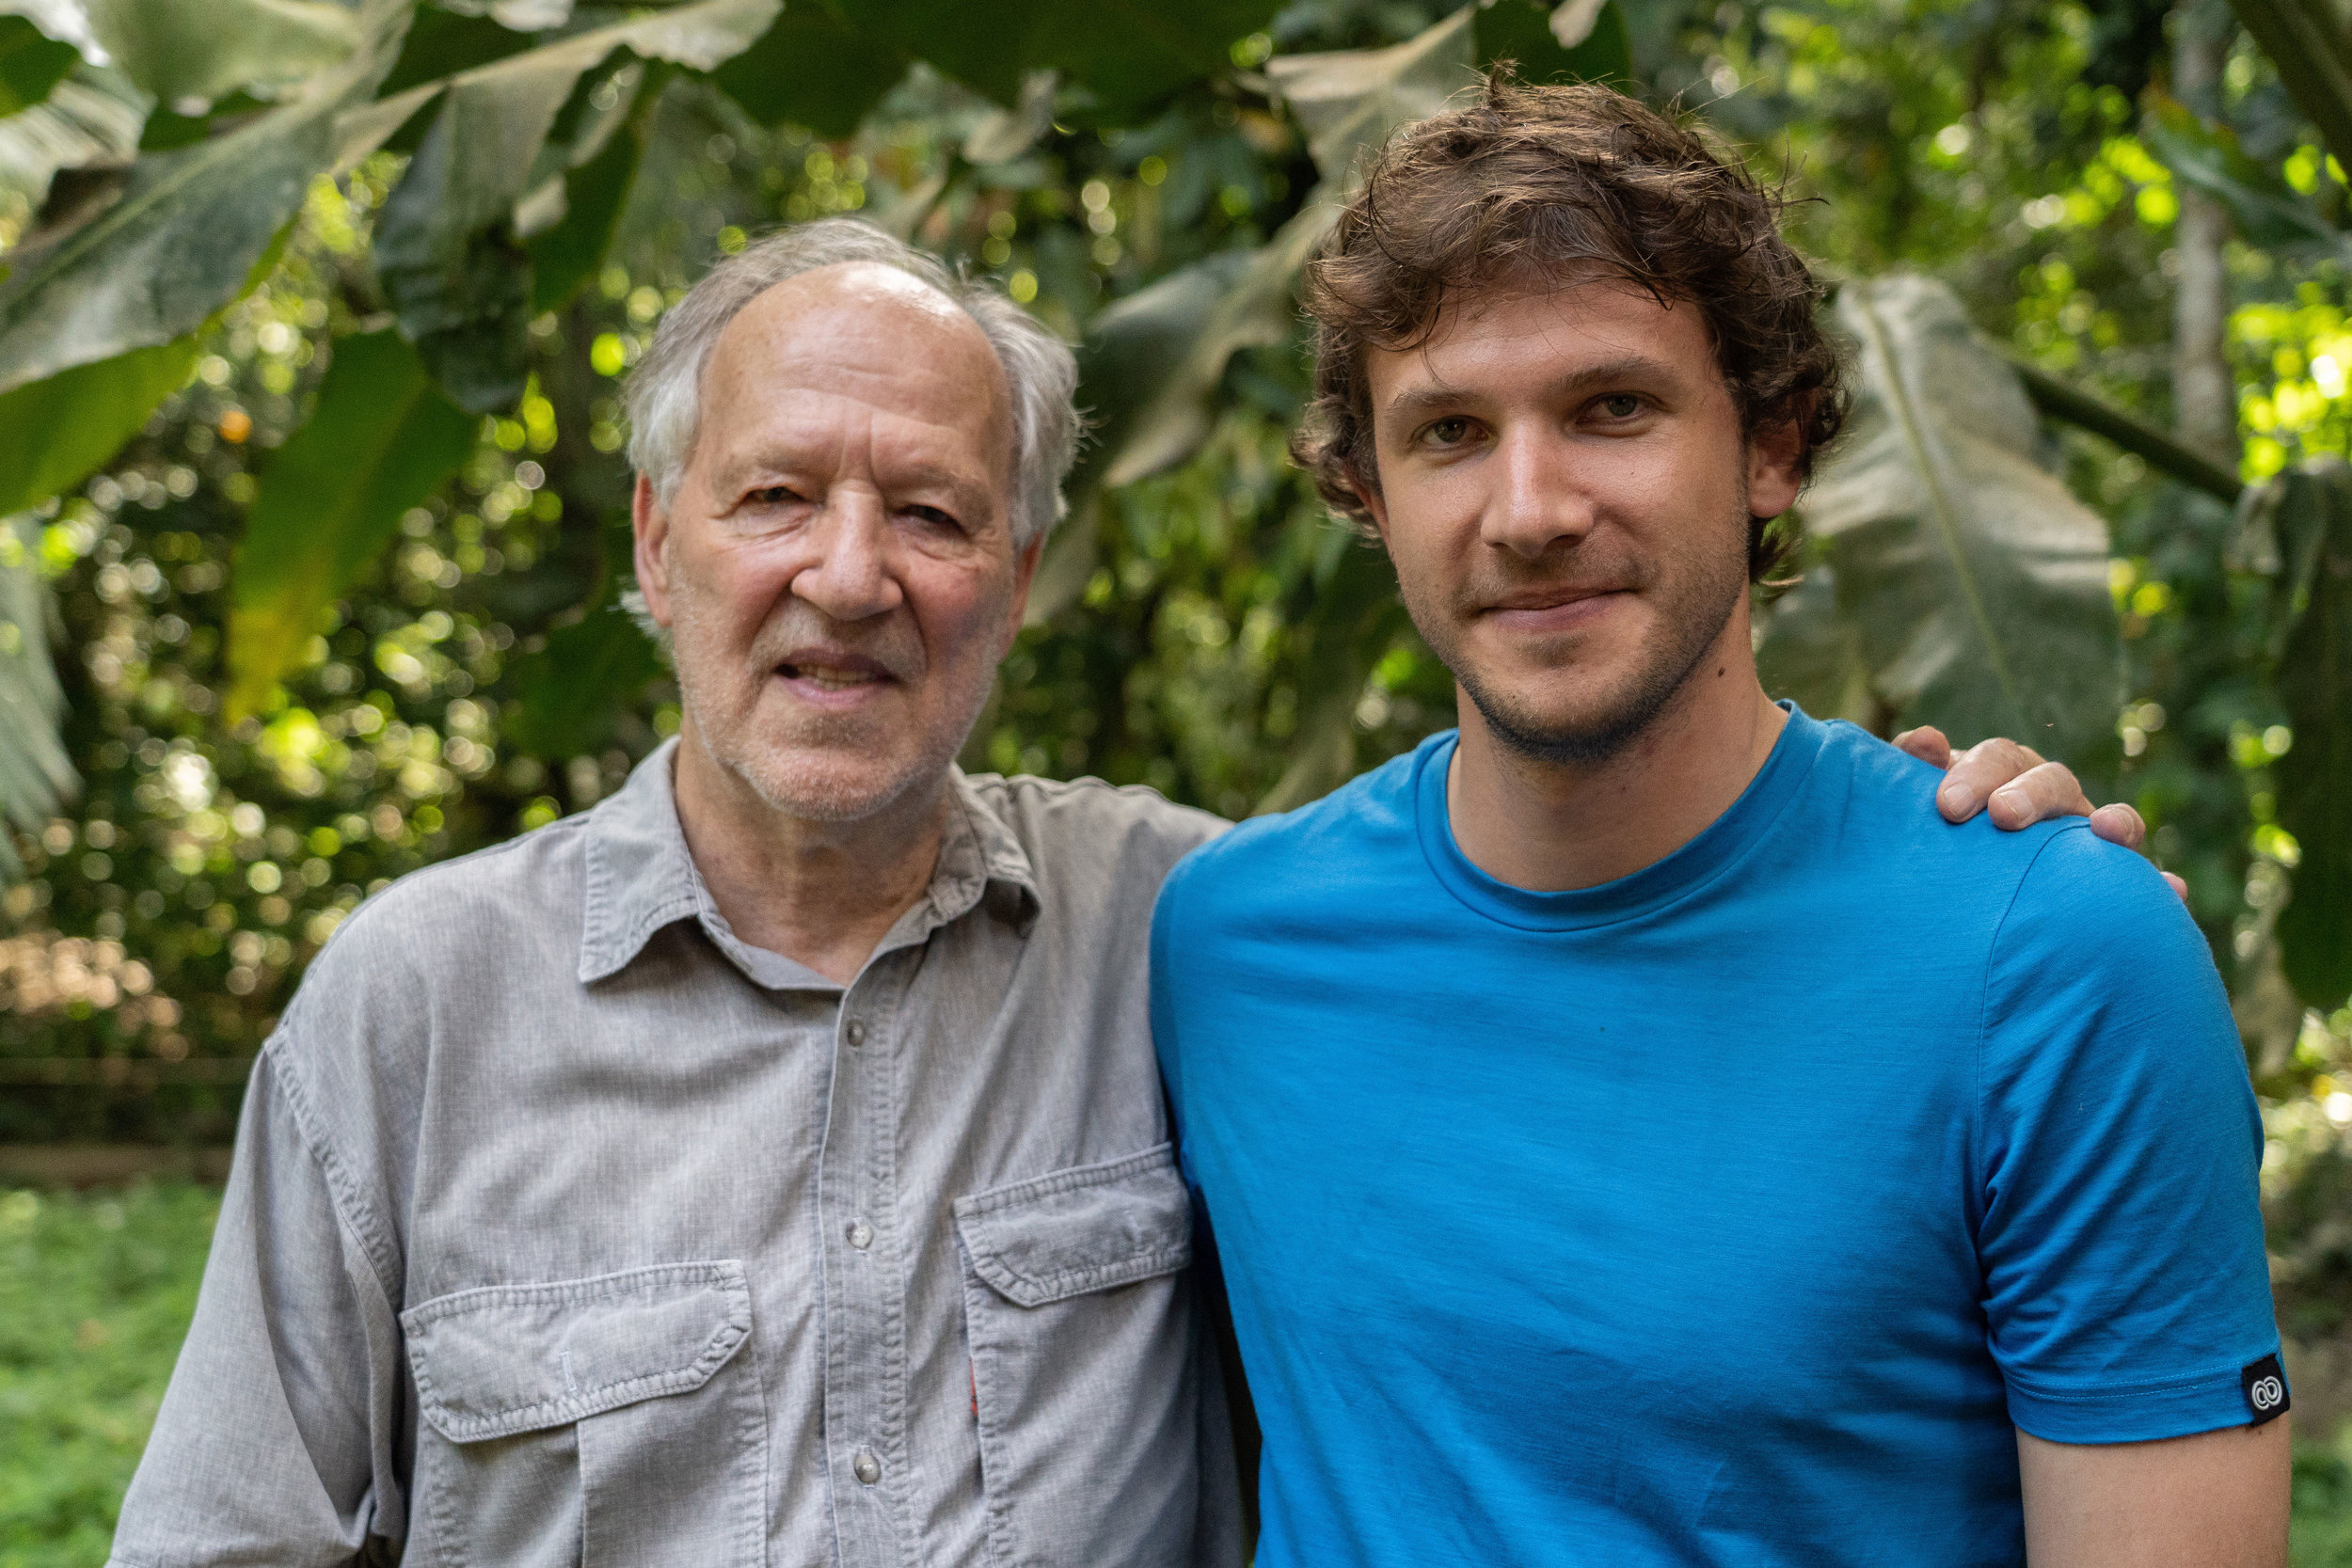 MAY 2018 : MEETING and Filming with werner herzog (!) .the short film was made under the mentorship of film director Werner Herzog